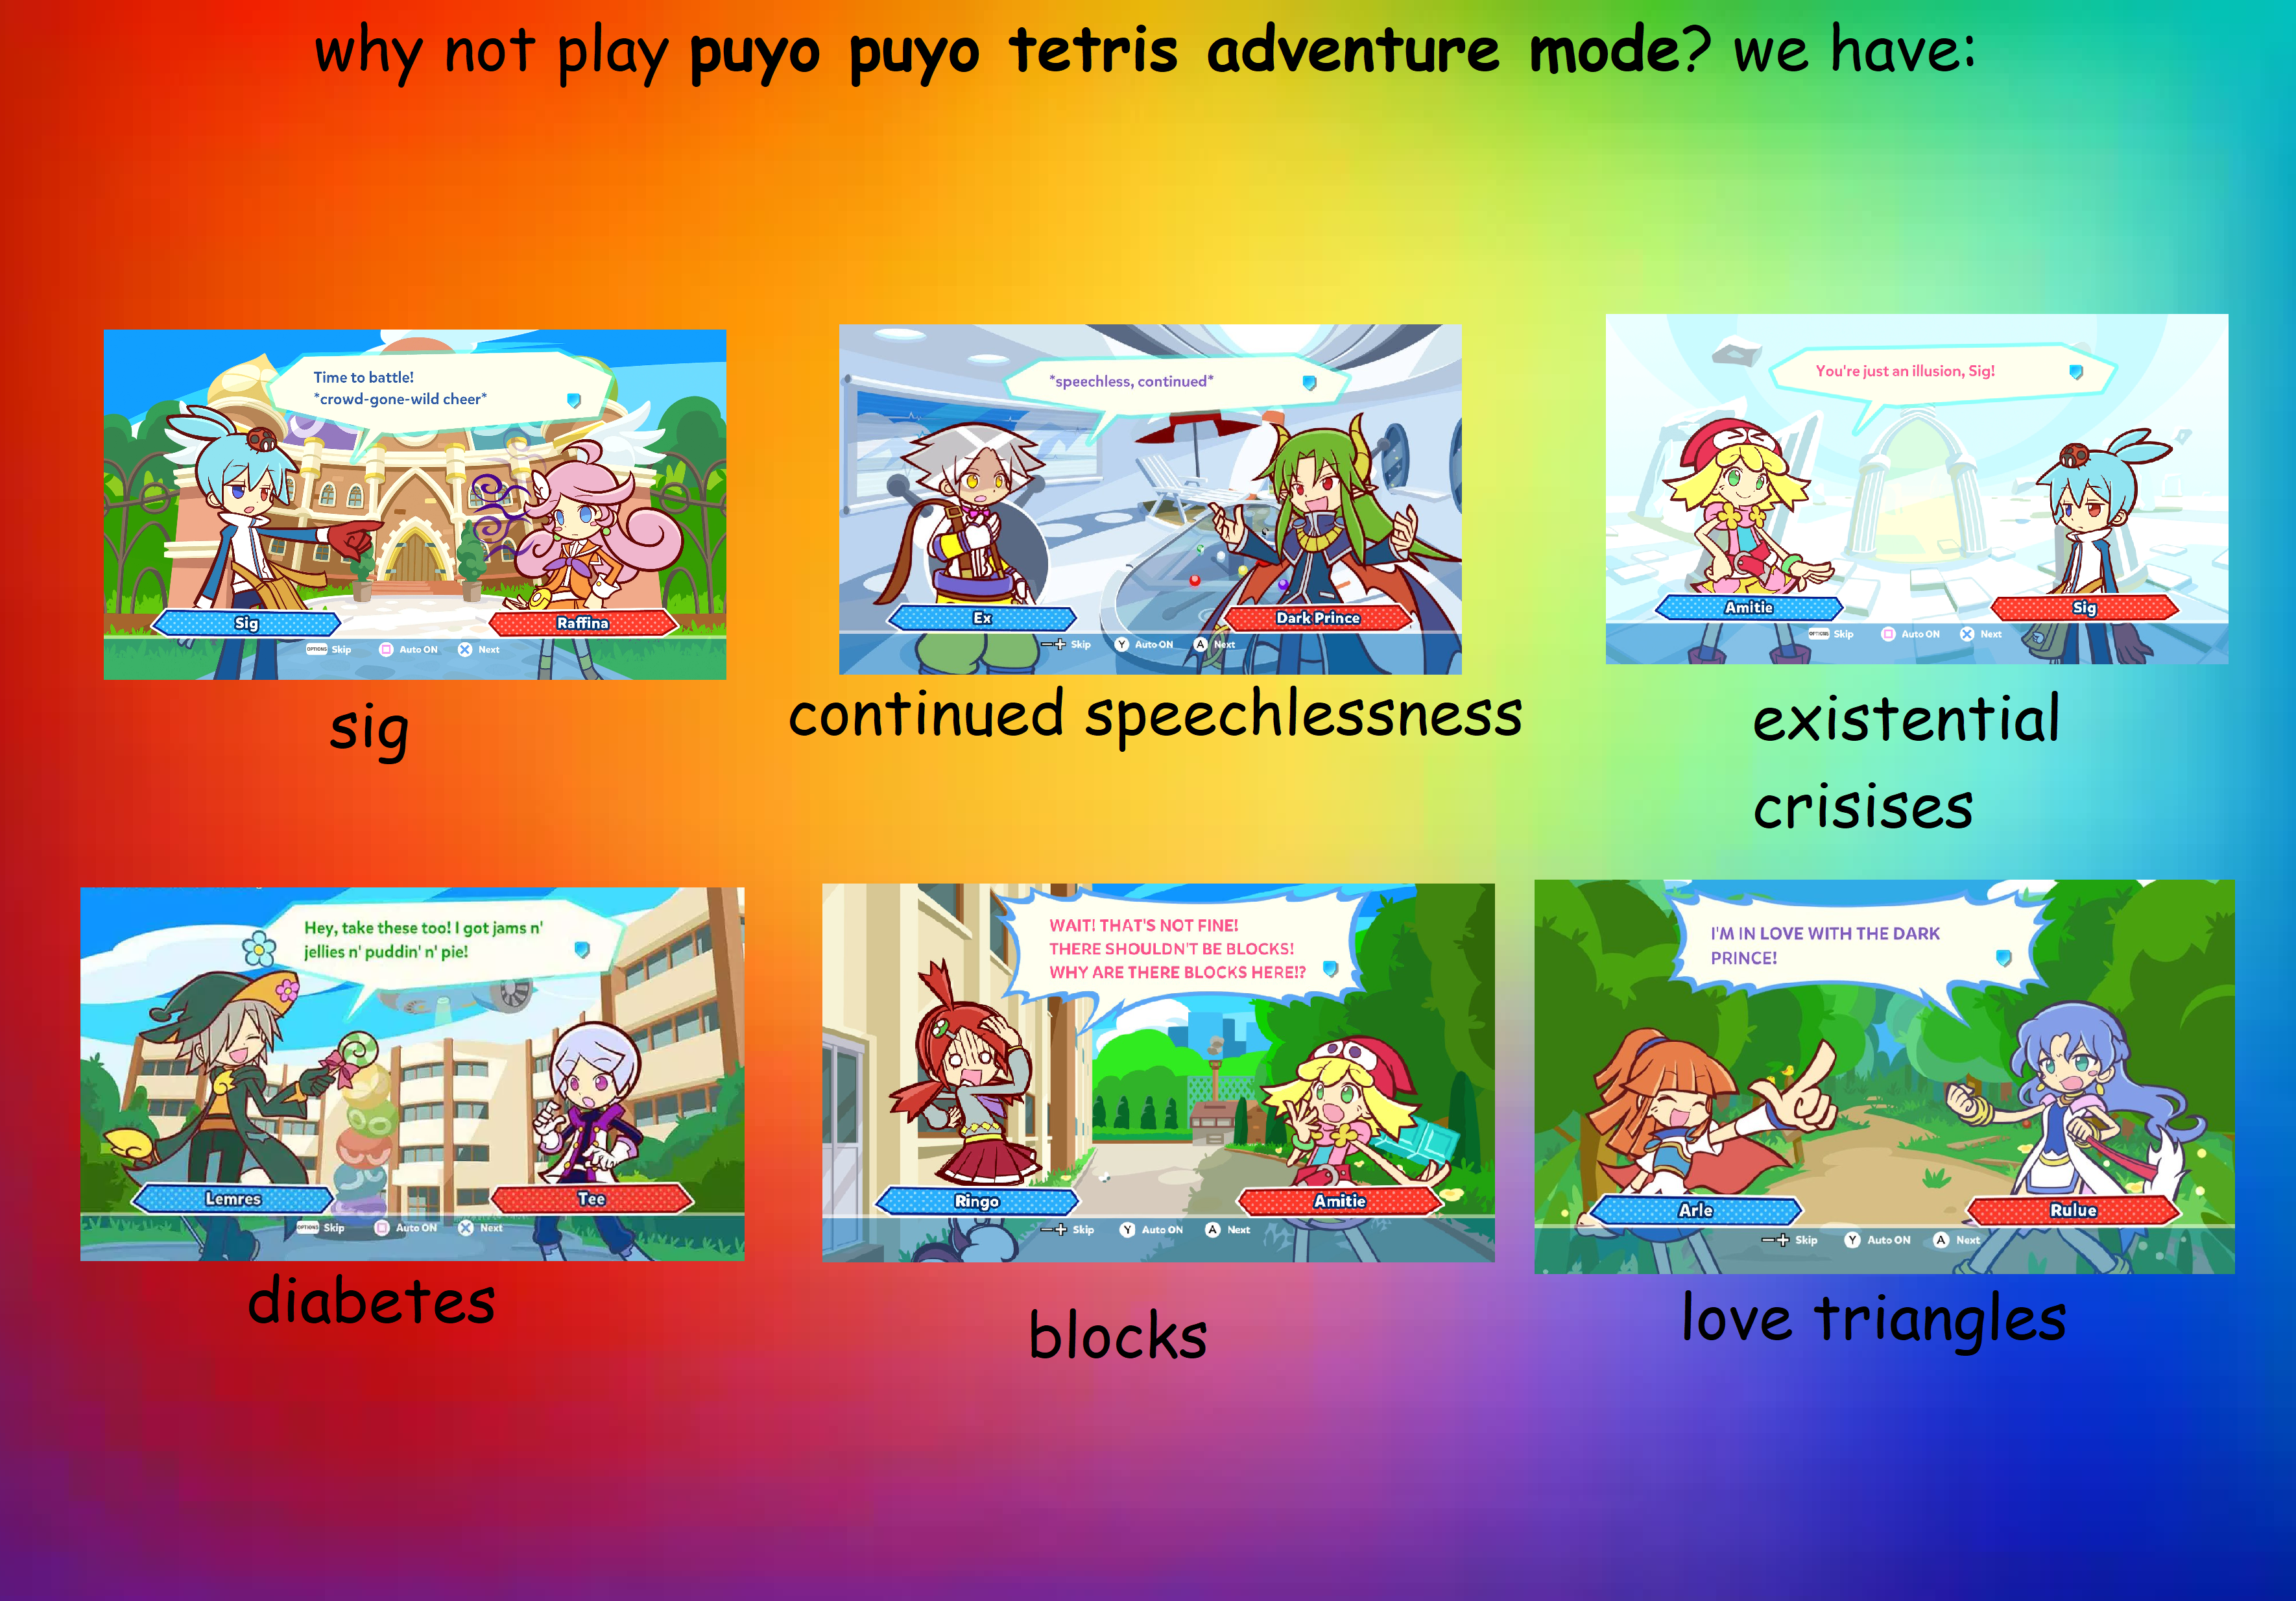 Why Not Play Puyo Puyo Tetris Adventure Mode Puyopuyotetris